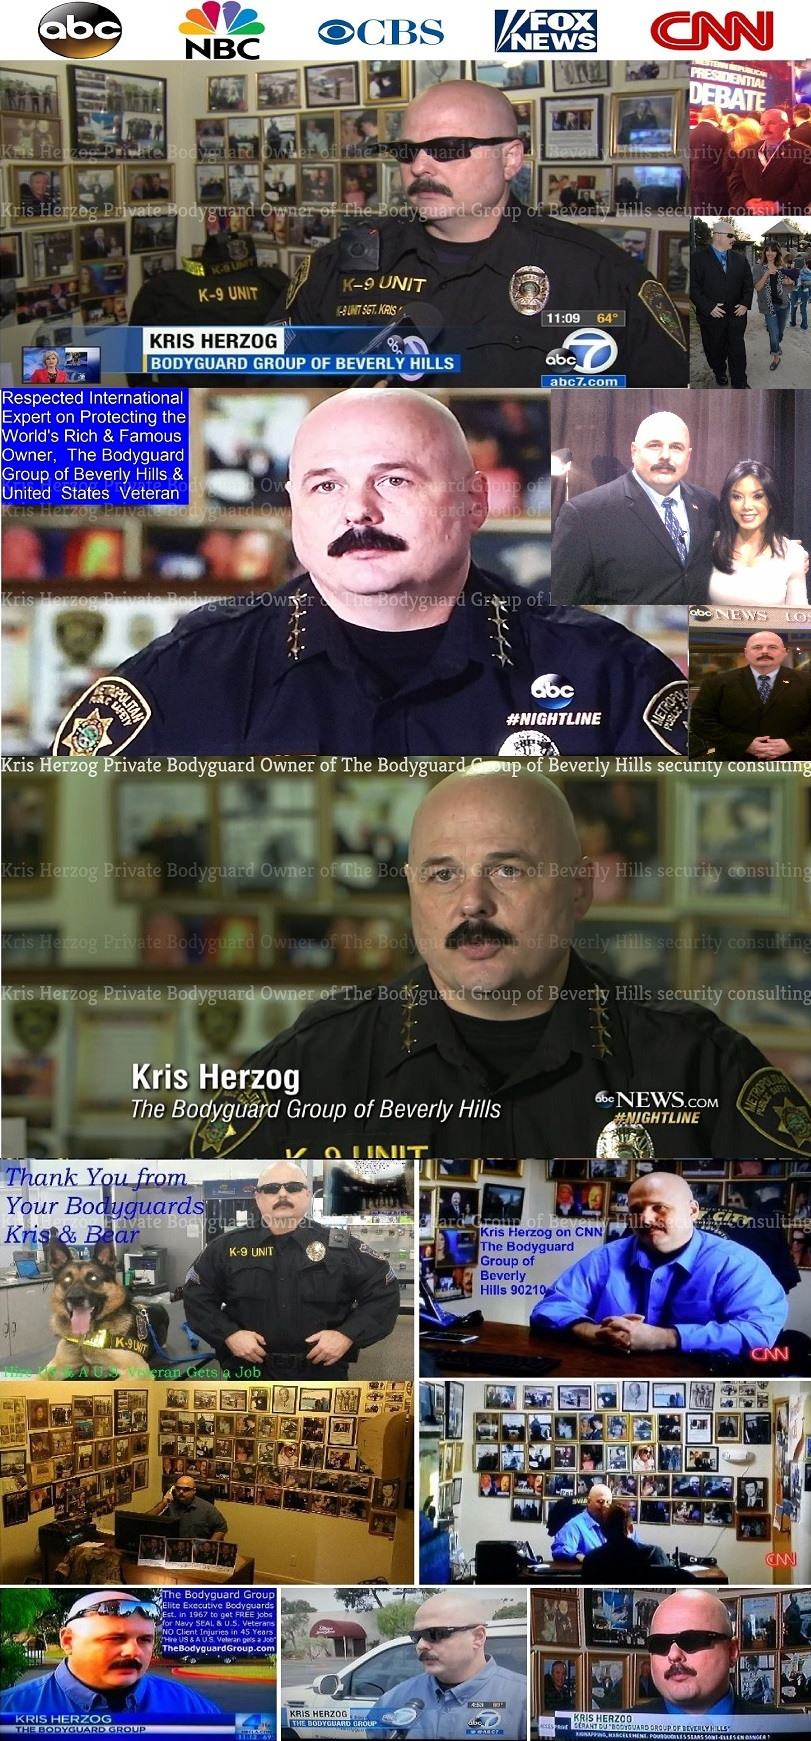 Kris Herzog and The Bodyguard Group of Beverly HIlls on the news abc, nbc, cbs, fox, cnn, los angeles celebrity bodyguards for hire 2011 u.s. copyright my true hollywood story by kris herzog 2019